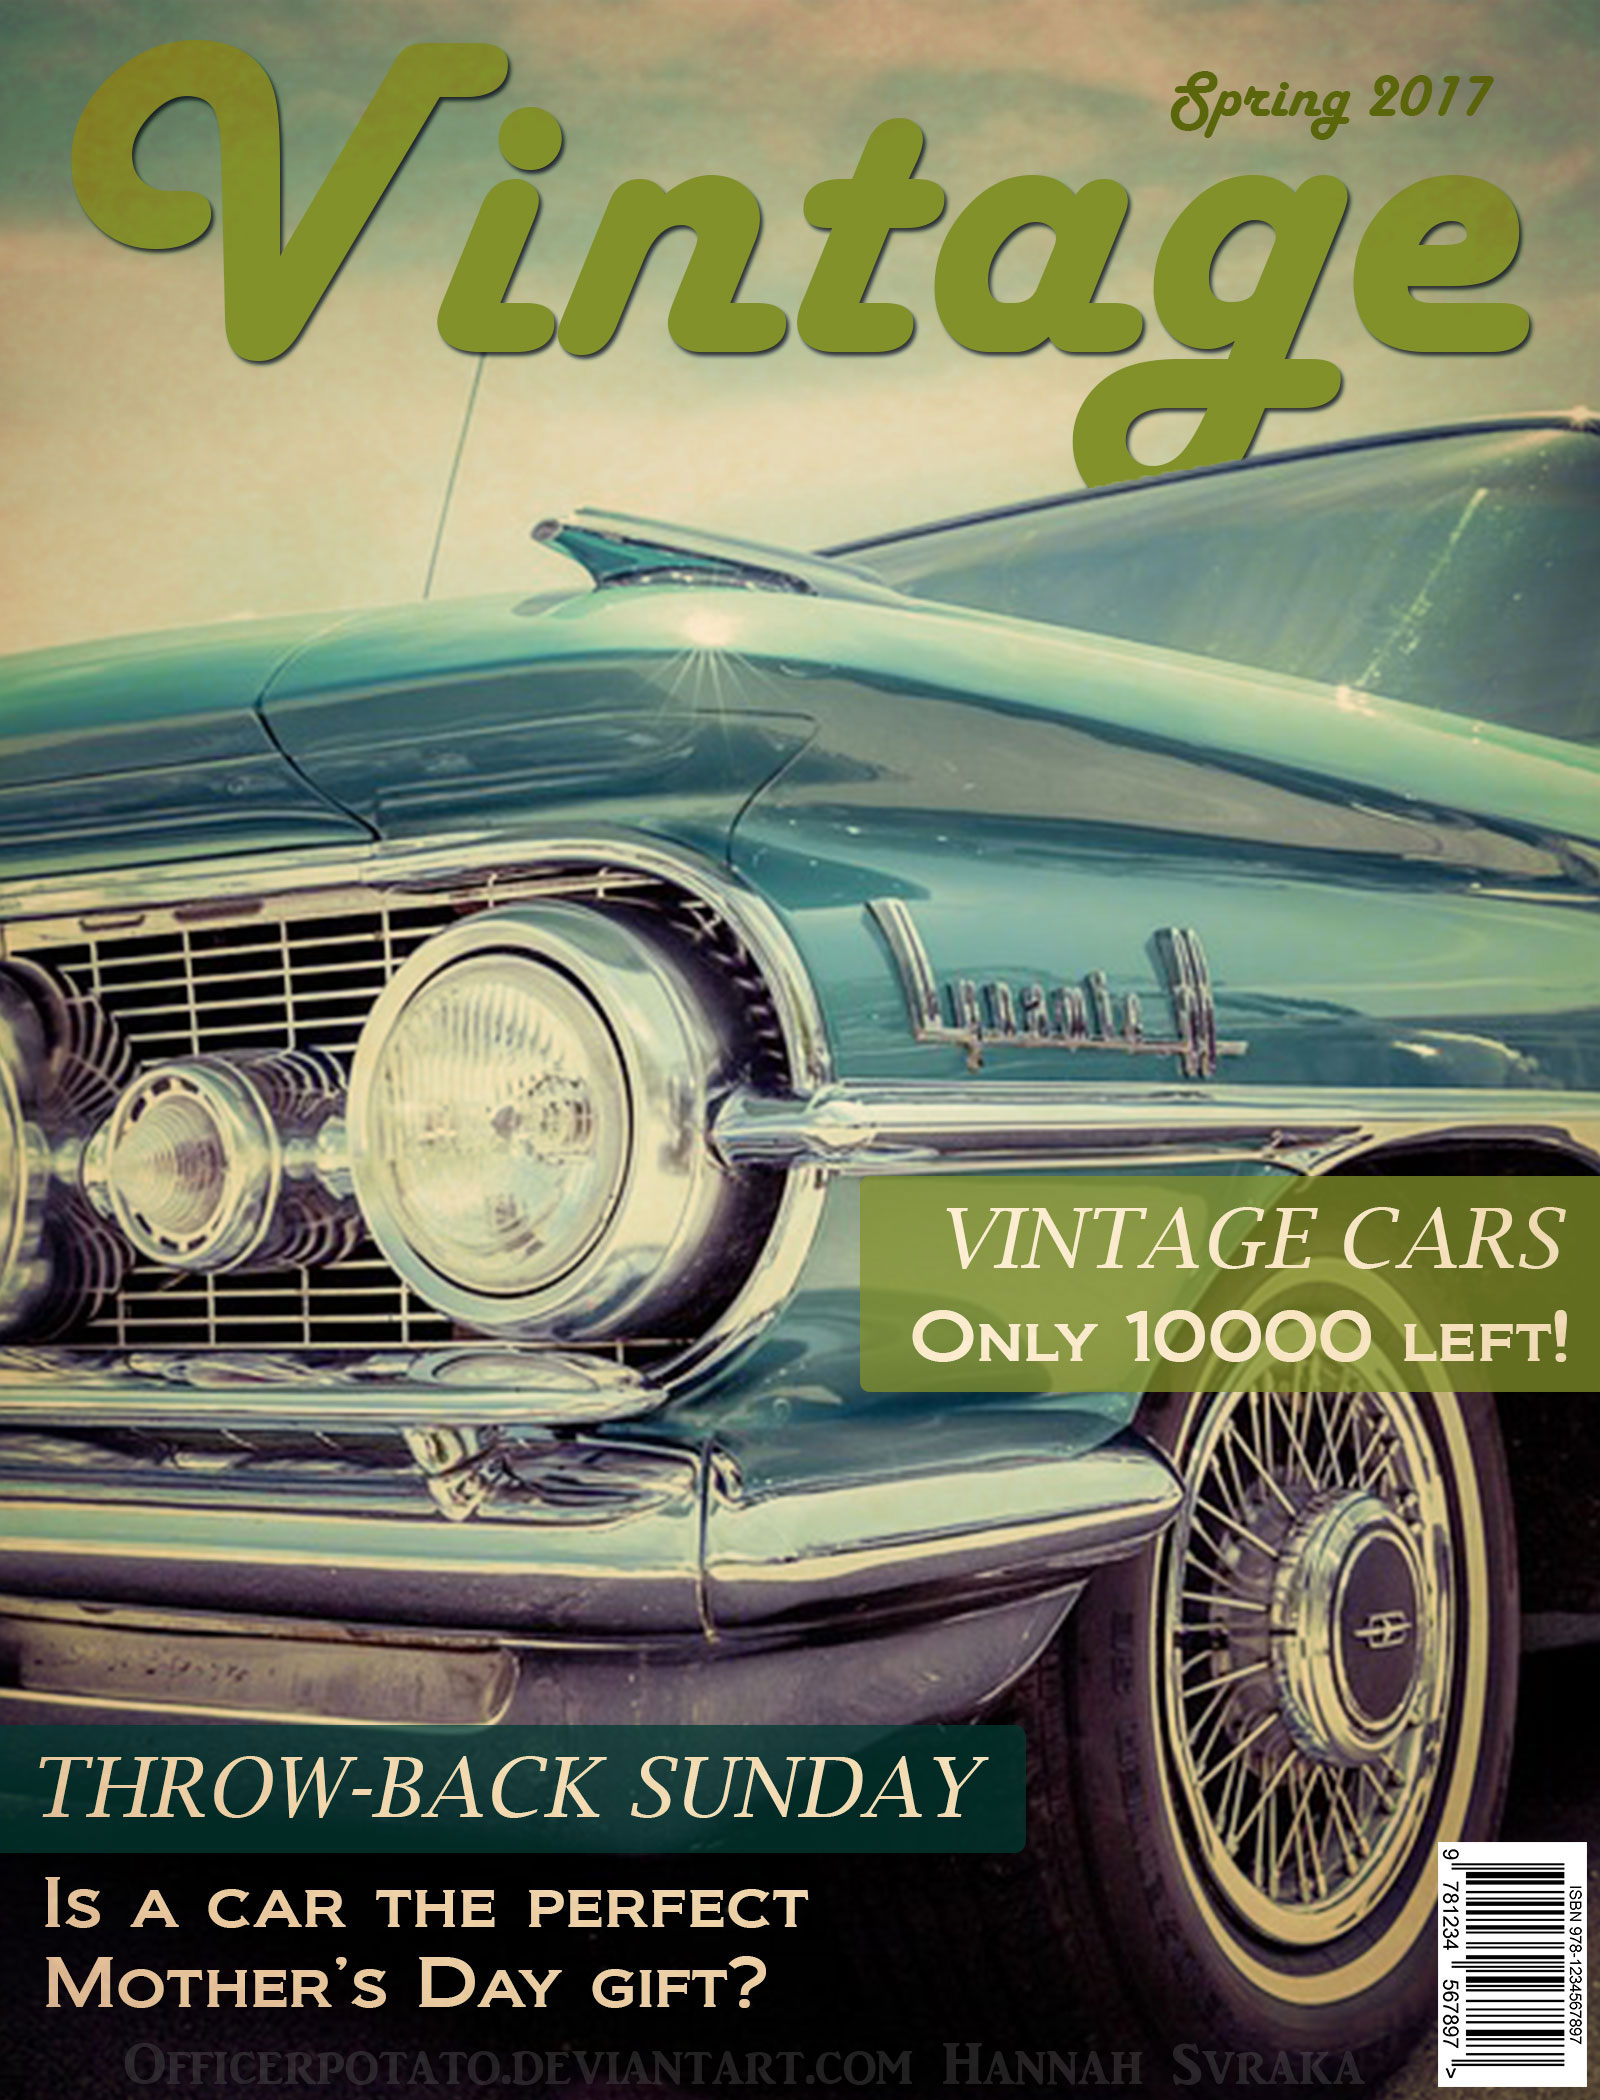 Example} Vintage Car Magazine Cover by OfficerPotato on DeviantArt